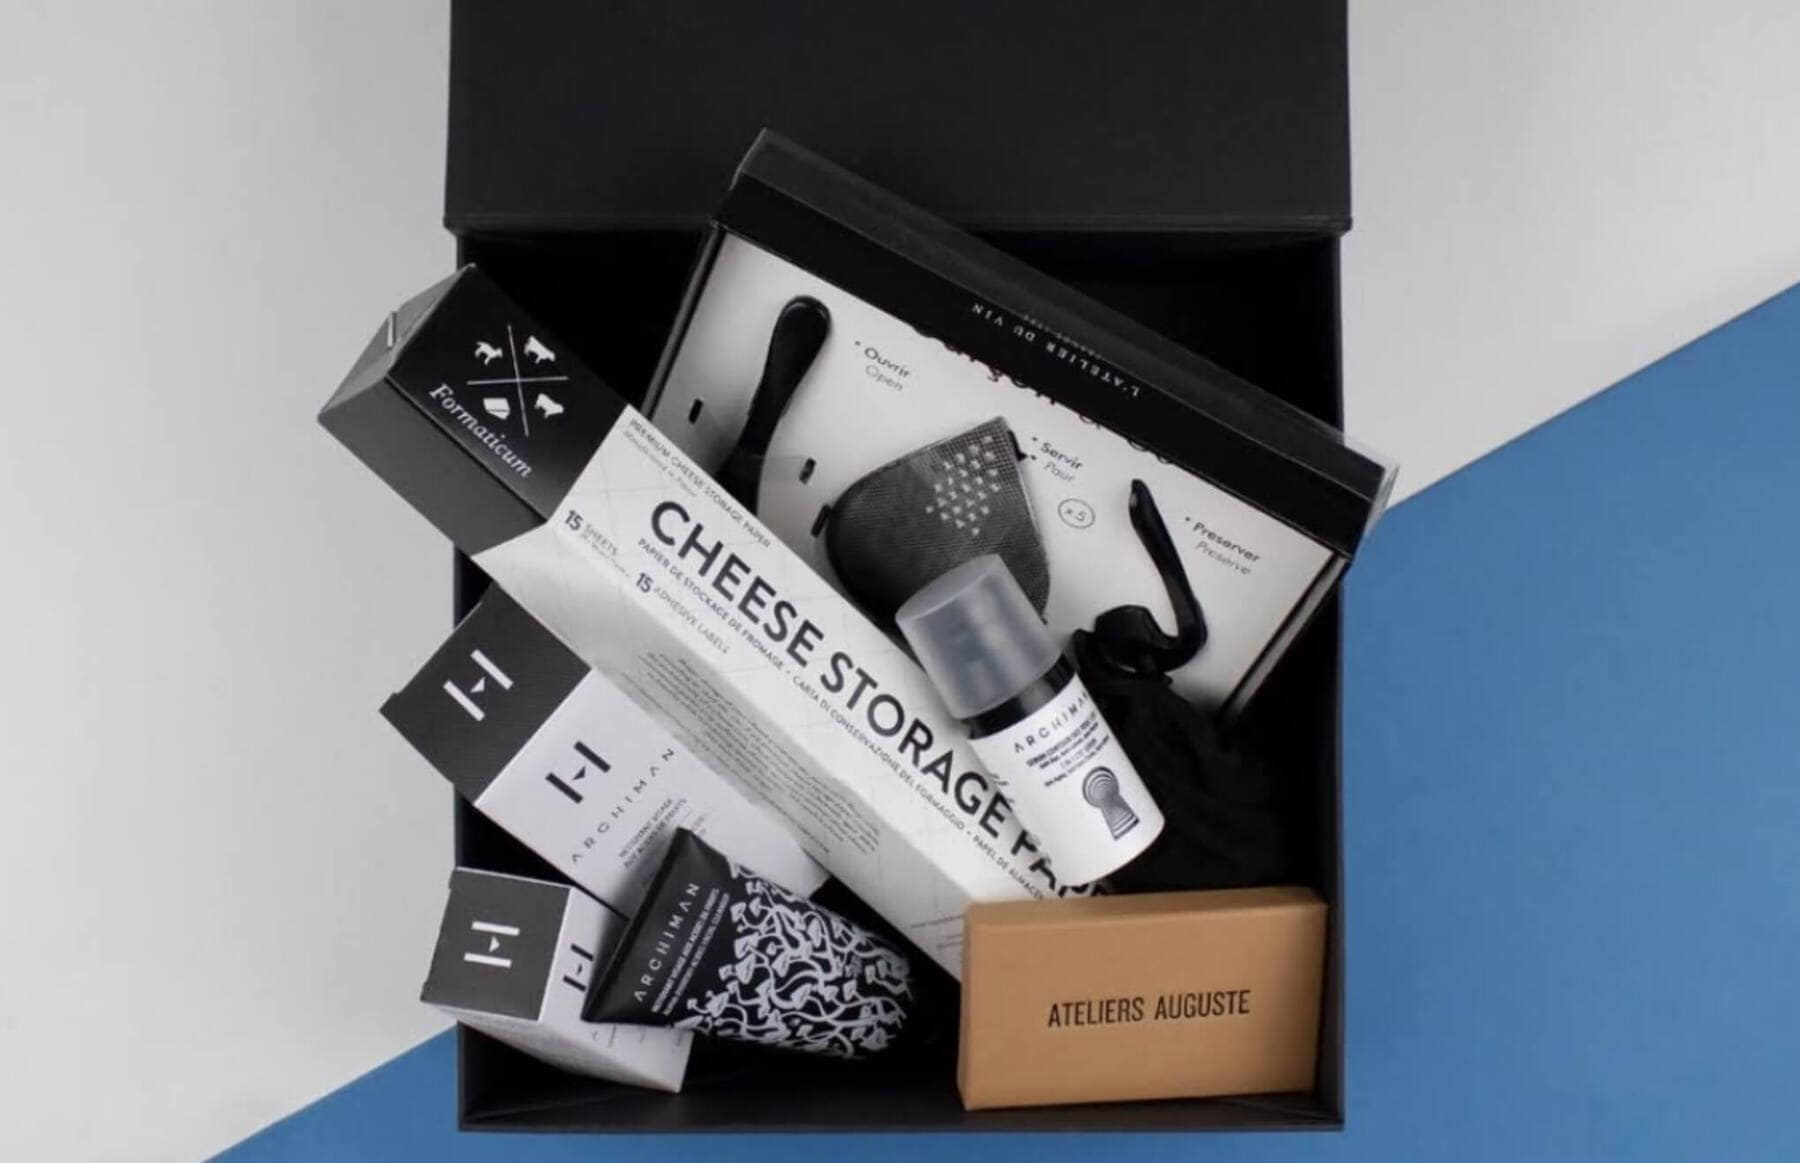 Father's Day Box with Cheese Storage Paper, Archiman, Garçon & Co, and Ateliers Auguste